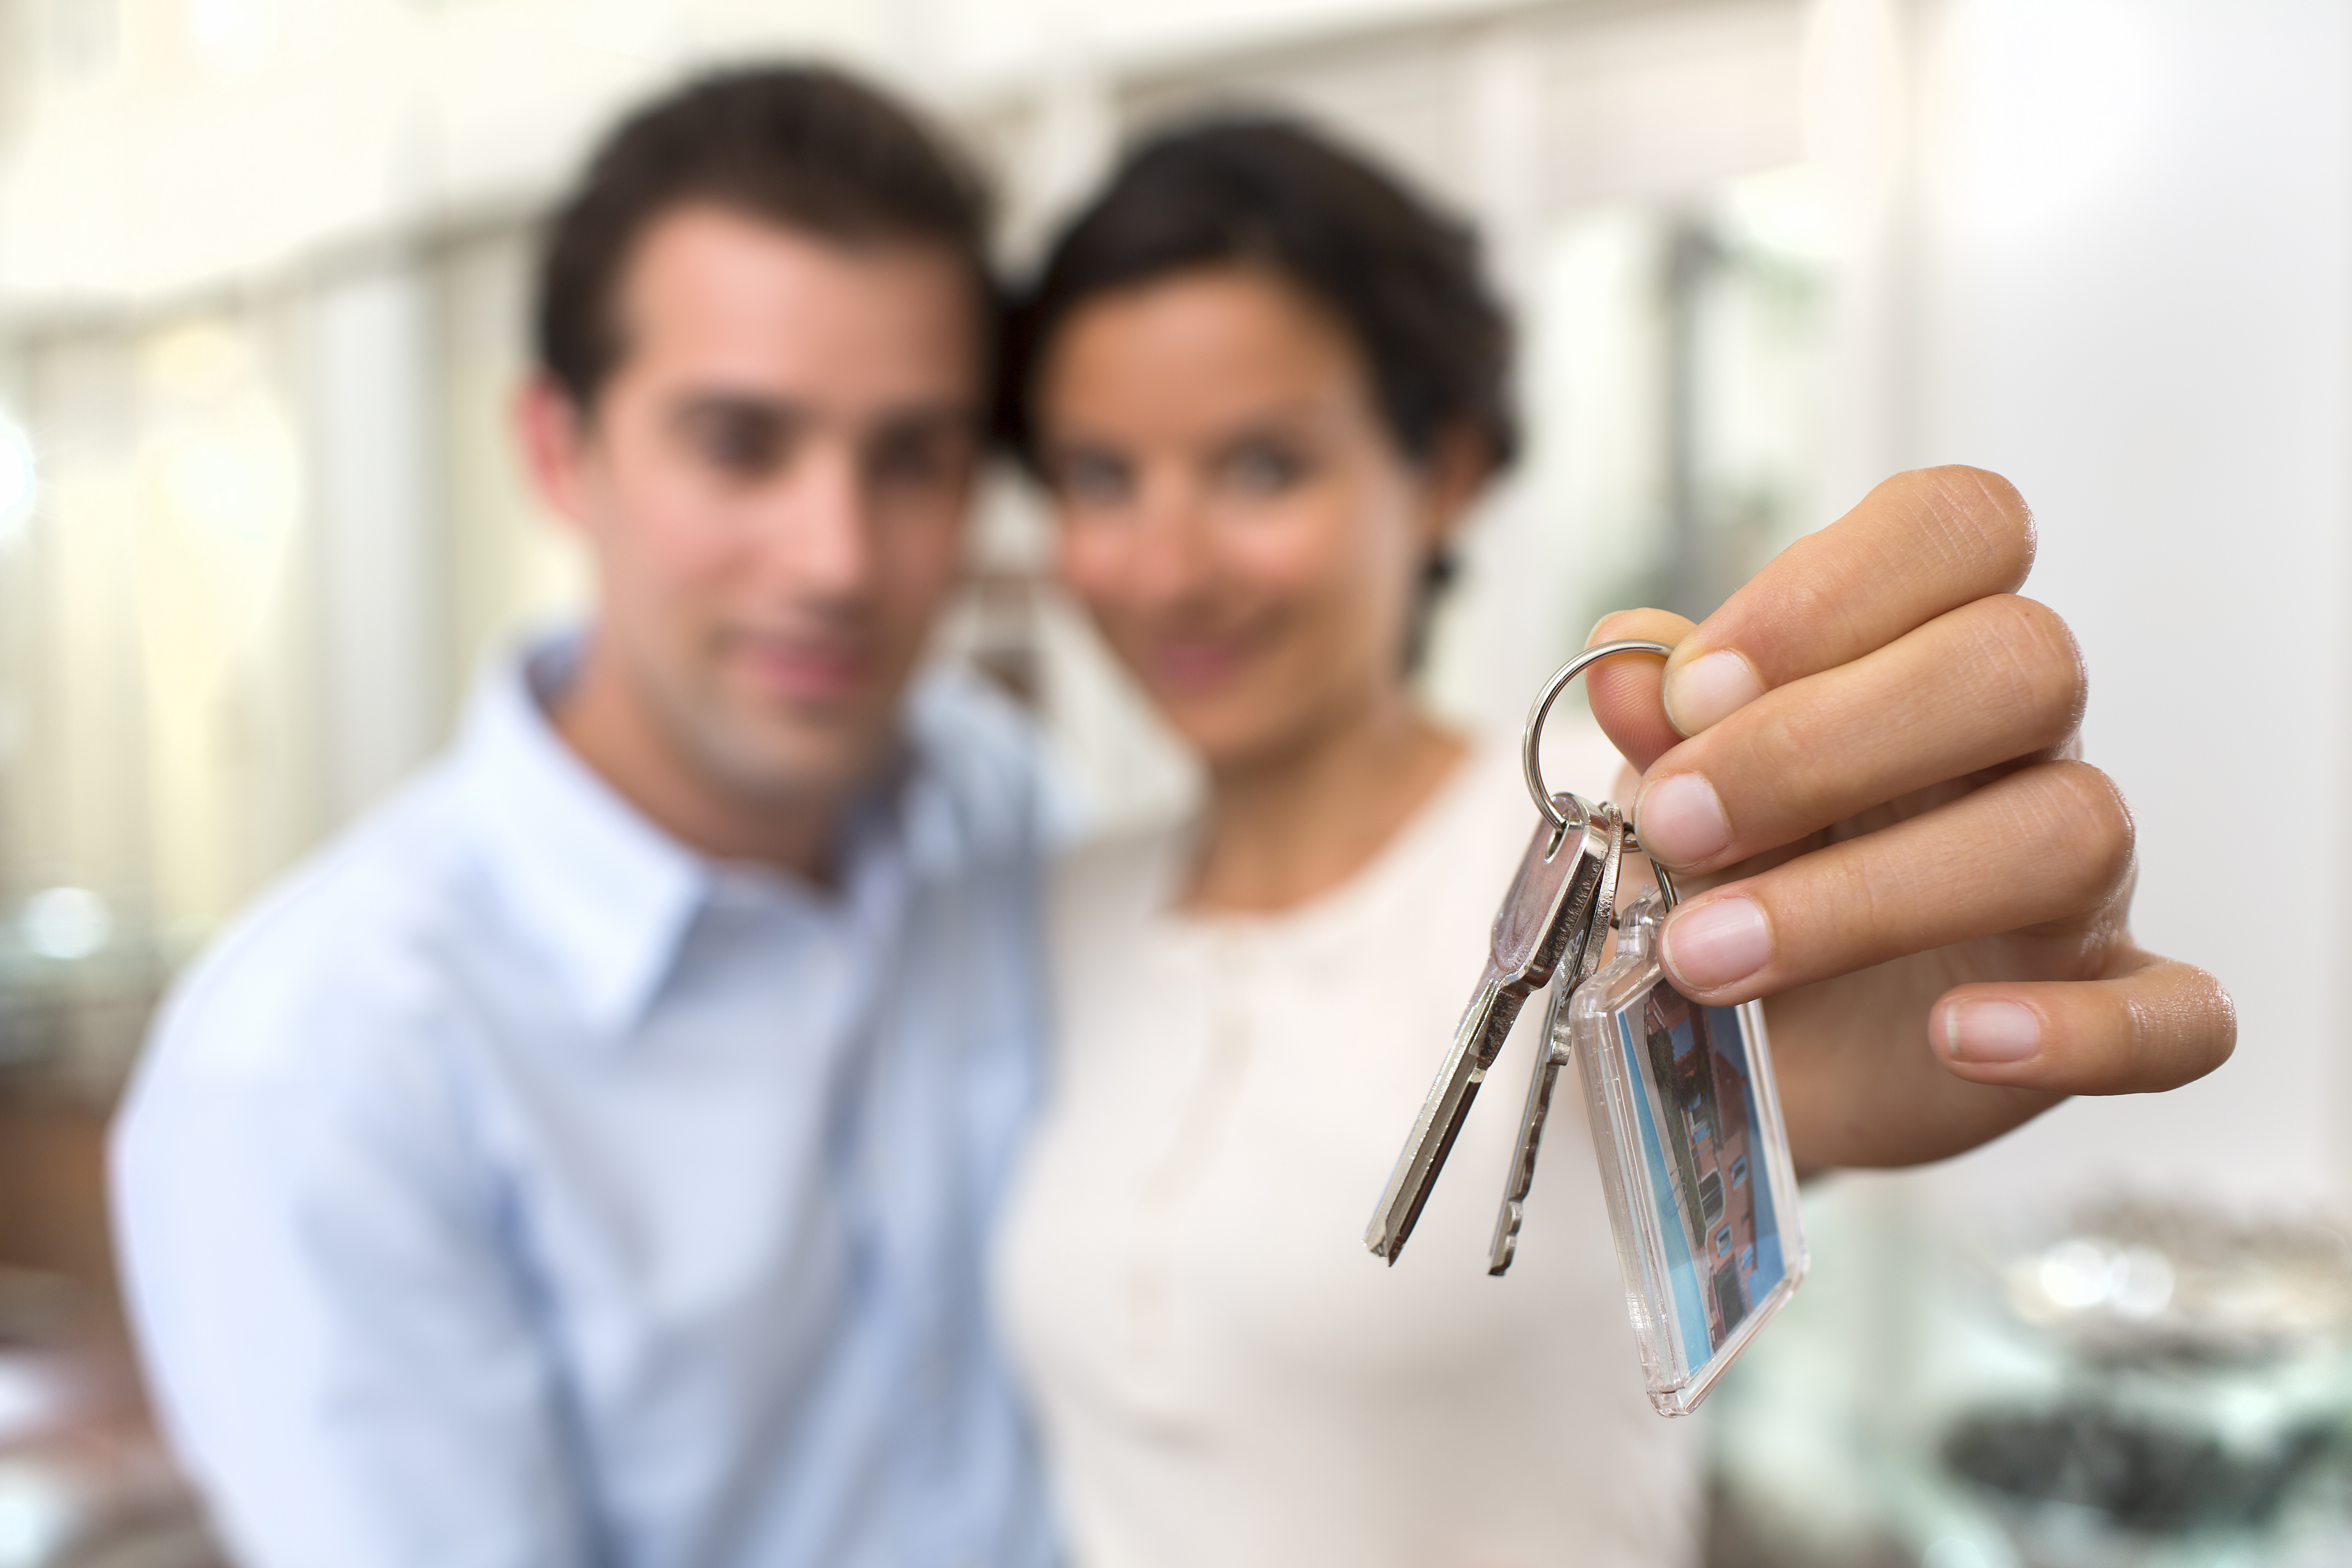 Home warranties are easily transferred to new homeowners